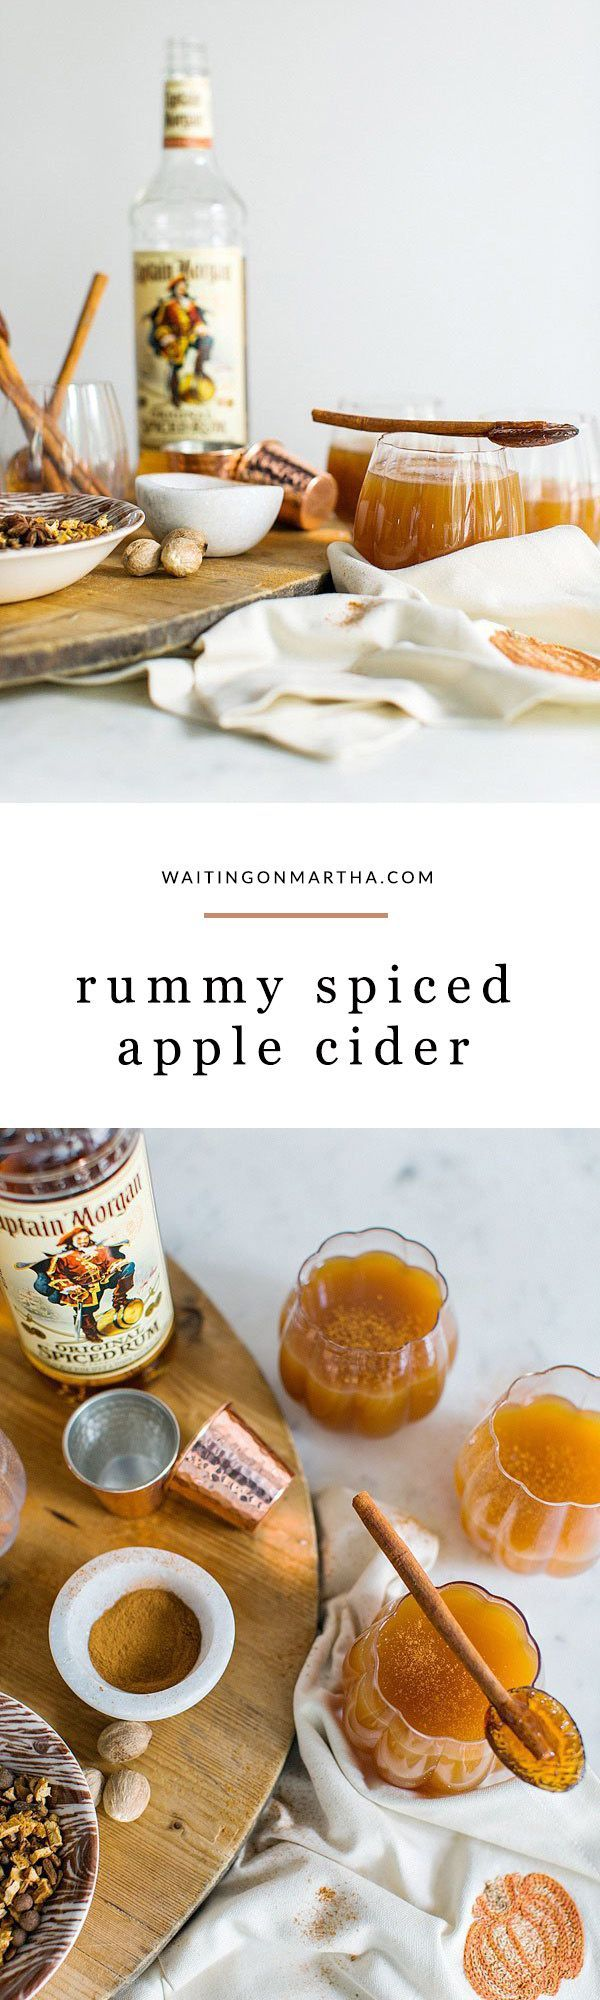 Rum spiced apple cider cocktail recipe by /waitingonmartha/